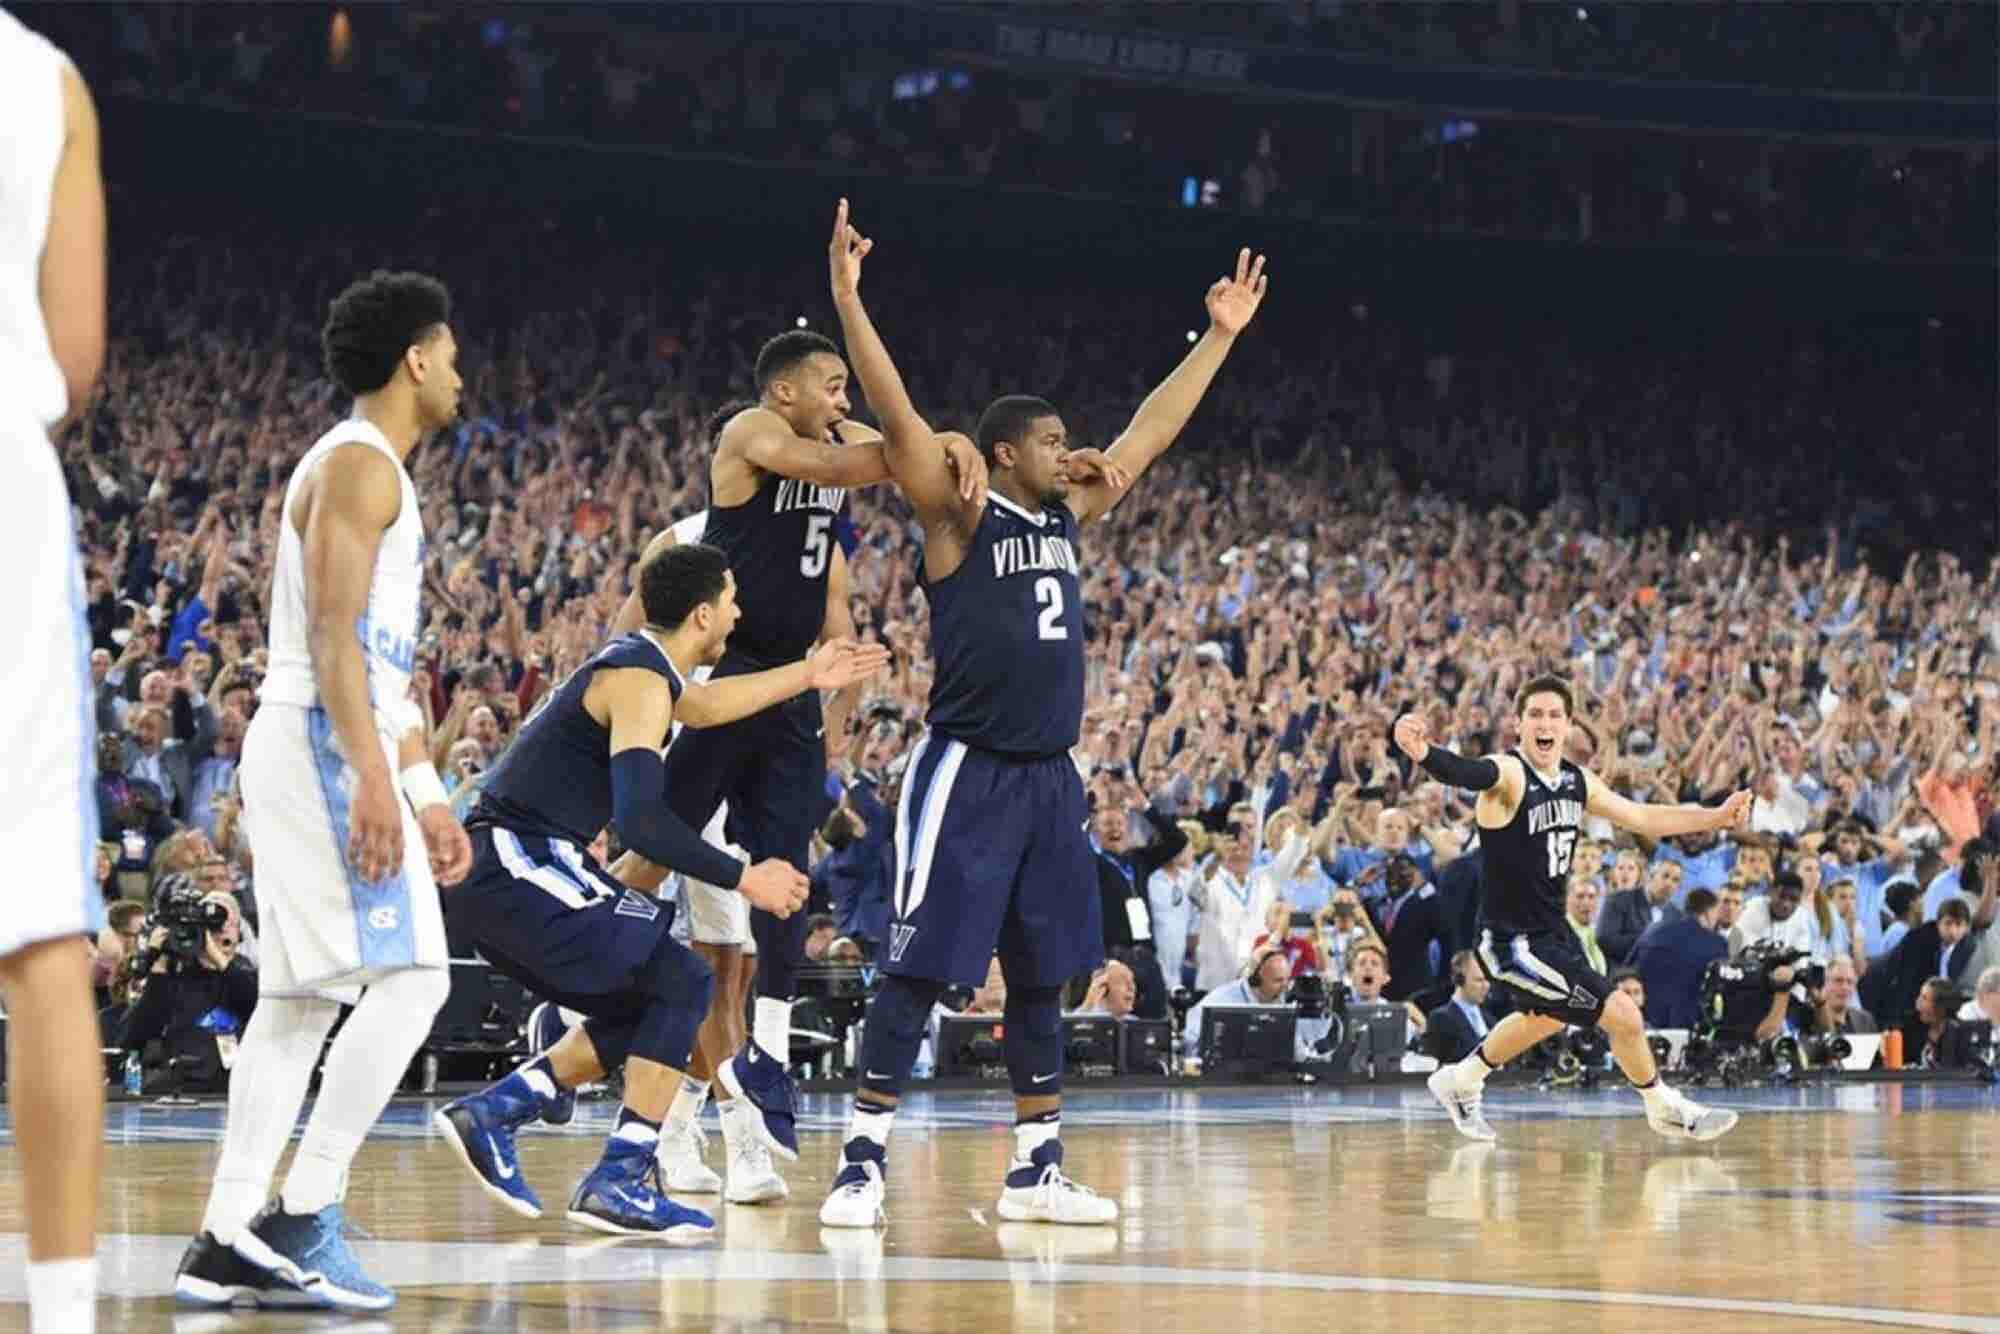 What the Villanova Wildcats Have to Teach Entrepreneurs About Unselfish Leadership